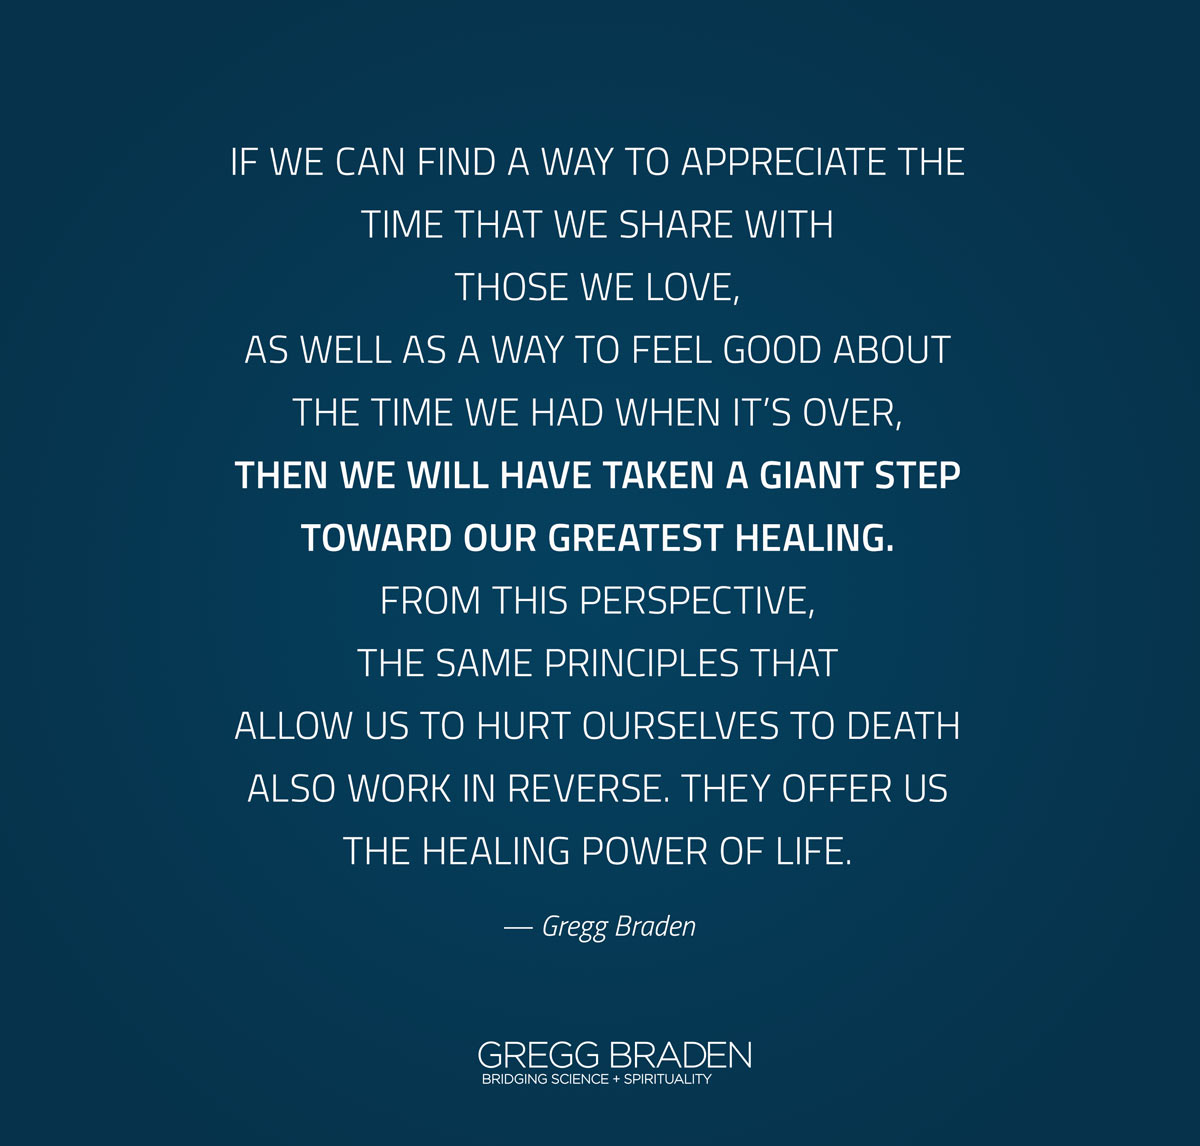 the same principles that allow us to hurt ourselves to death also work in reverse. They offer us the healing power of Life.